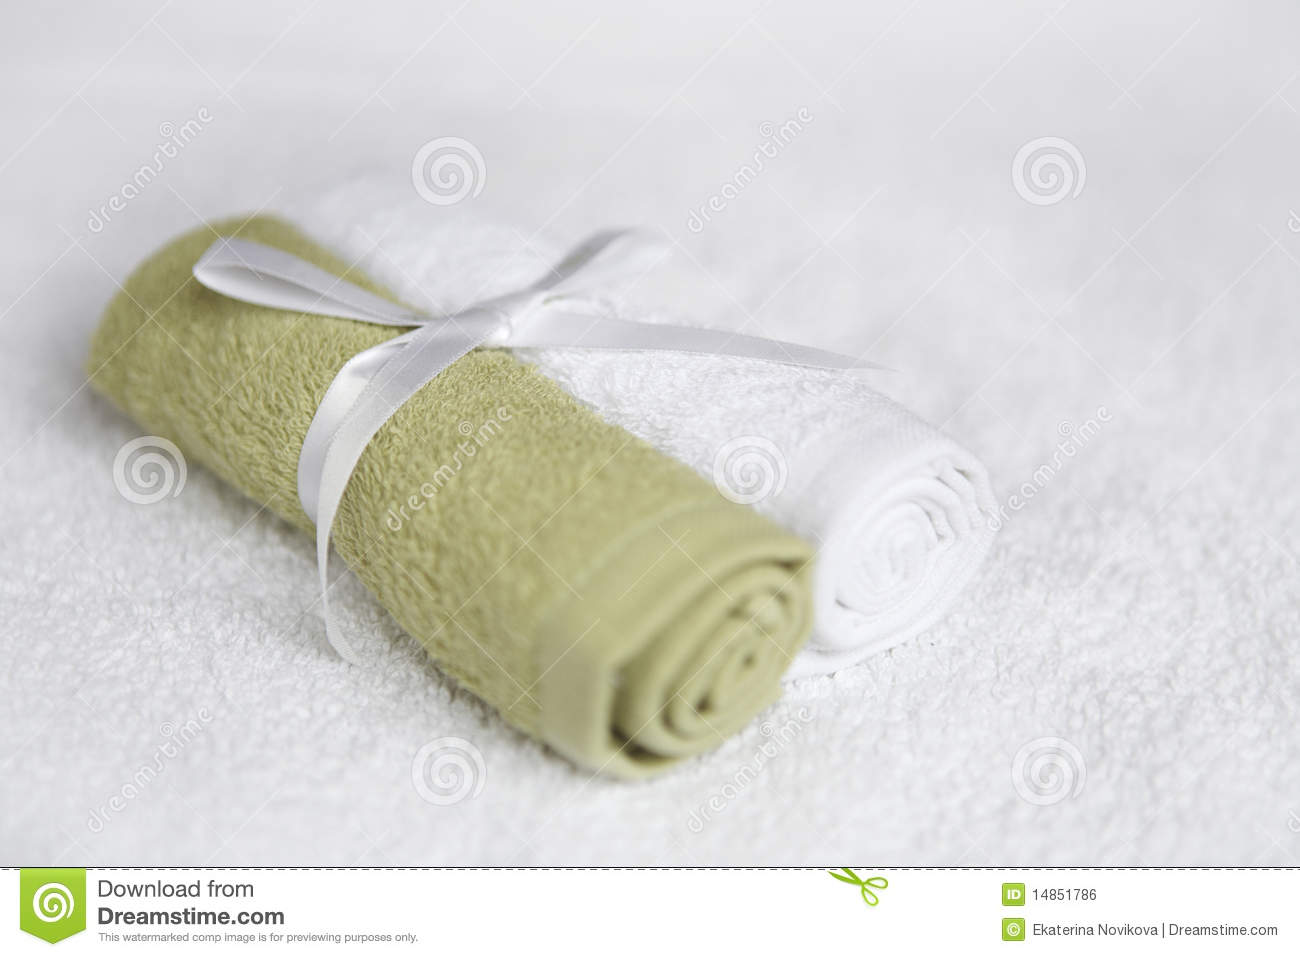 Washcloths tied with ribbon